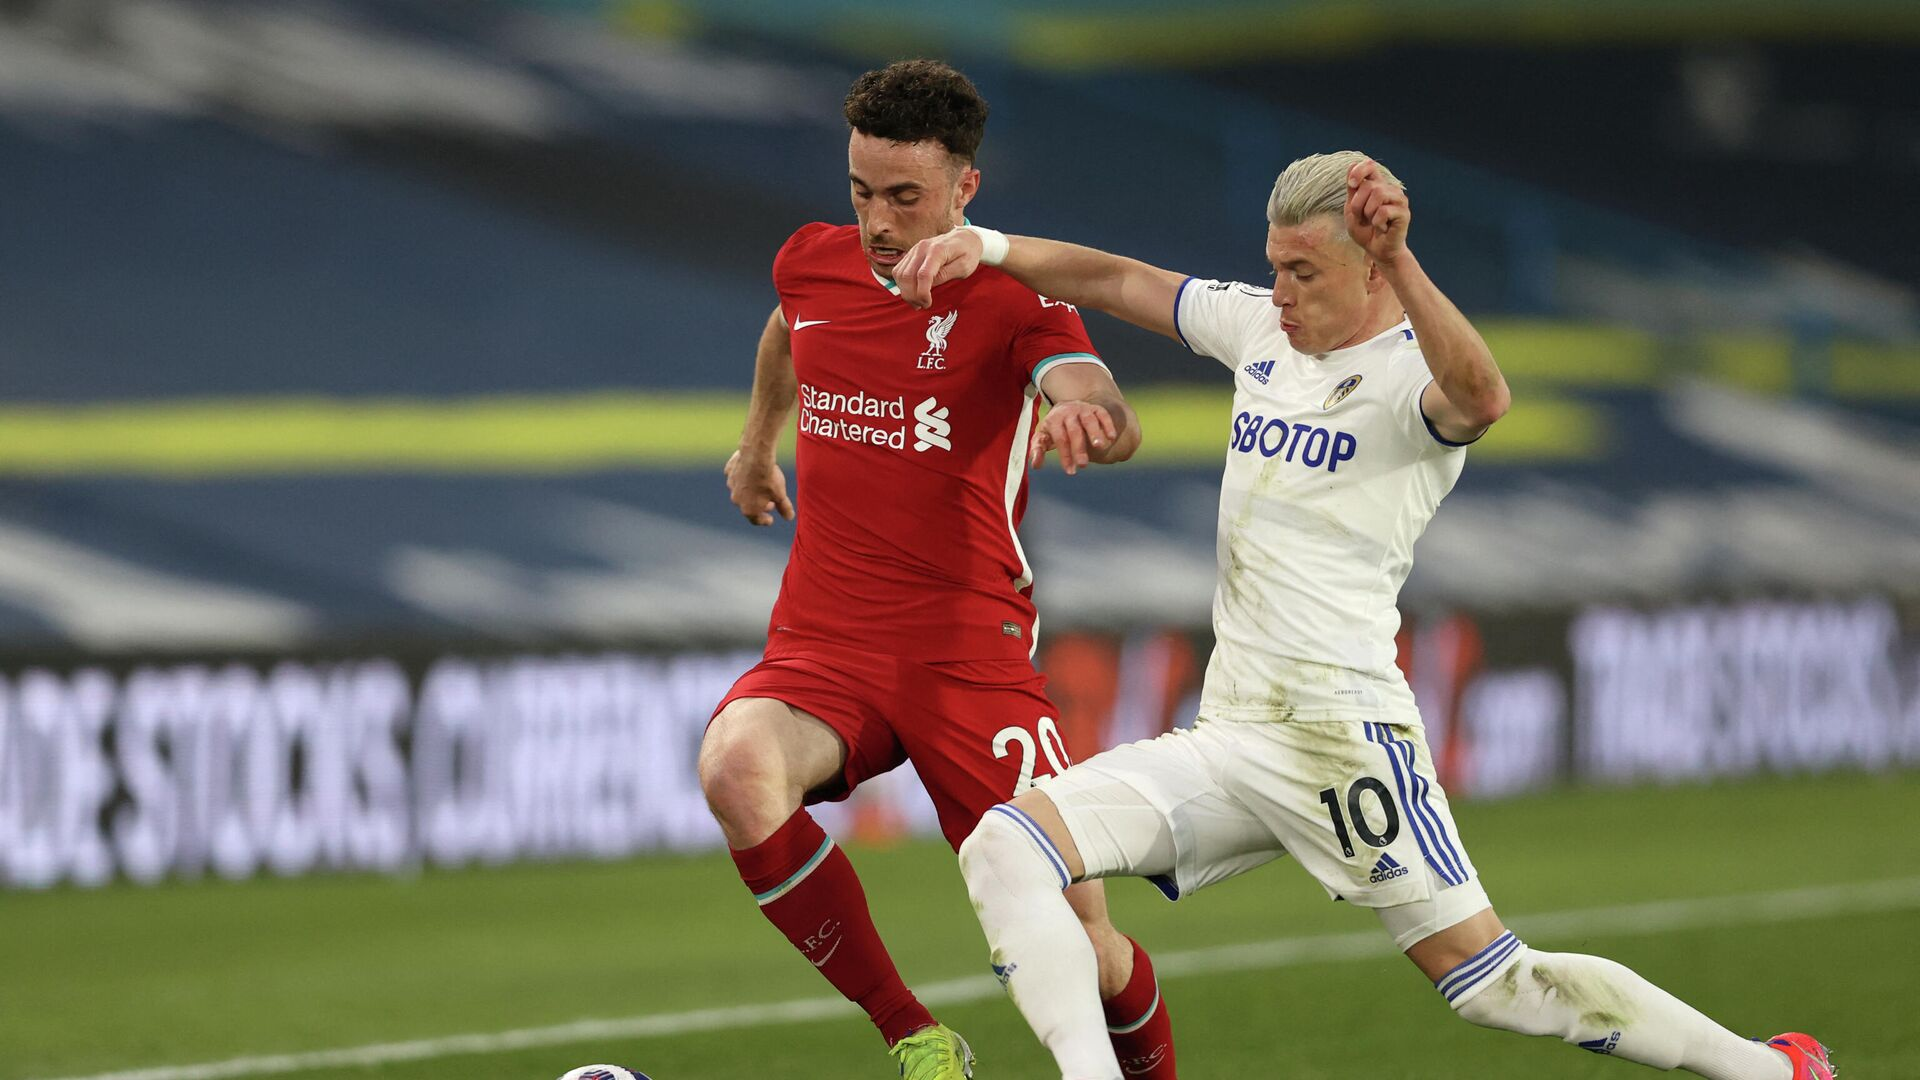 Leeds United's Macedonian midfielder Ezgjan Alioski (R) challenges Liverpool's Portuguese striker Diogo Jota (L) during the English Premier League football match between Leeds United and Liverpool at Elland Road in Leeds, northern England on April 19, 2021. (Photo by Clive Brunskill / POOL / AFP) / RESTRICTED TO EDITORIAL USE. No use with unauthorized audio, video, data, fixture lists, club/league logos or 'live' services. Online in-match use limited to 120 images. An additional 40 images may be used in extra time. No video emulation. Social media in-match use limited to 120 images. An additional 40 images may be used in extra time. No use in betting publications, games or single club/league/player publications. /  - РИА Новости, 1920, 20.04.2021